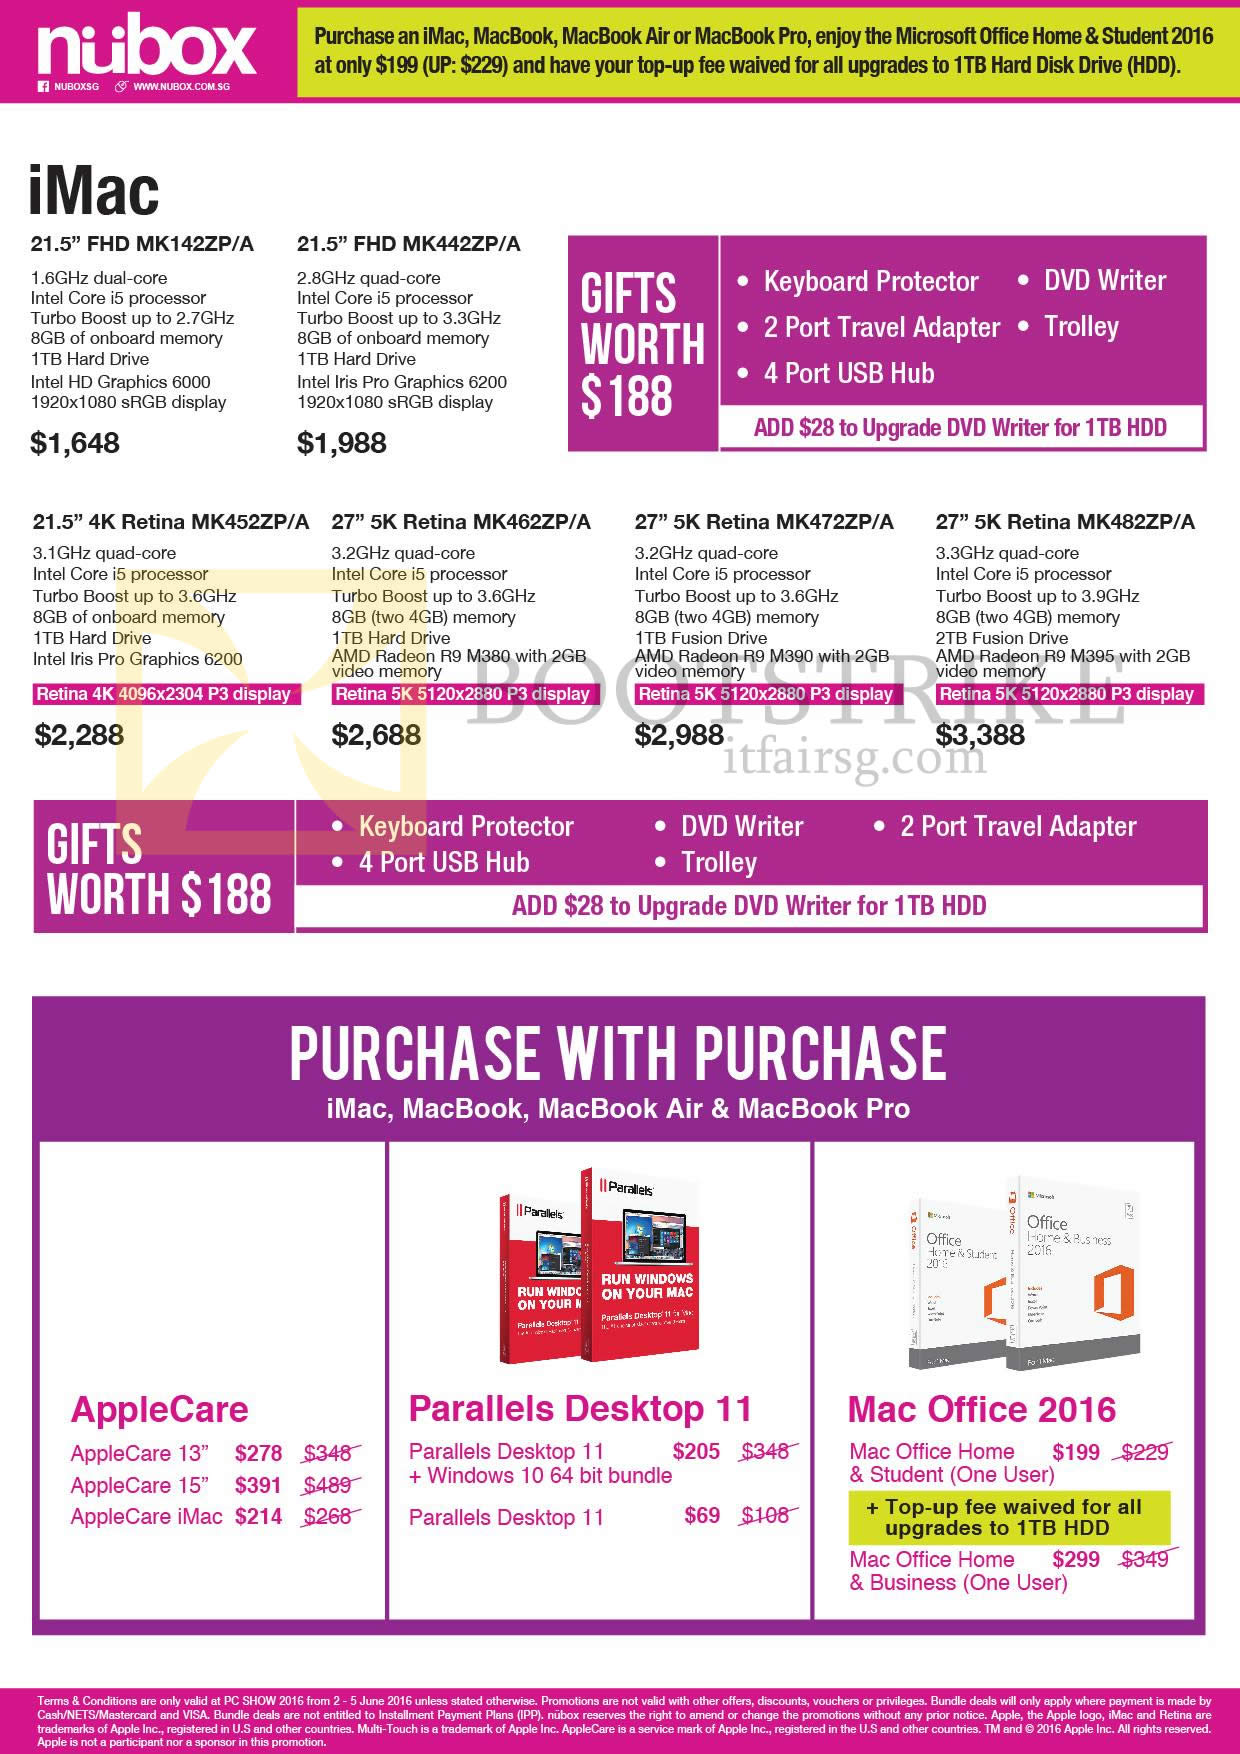 PC SHOW 2016 price list image brochure of Nubox Apple IMac Desktop PC, Purchase With Purchase Parallels, Office